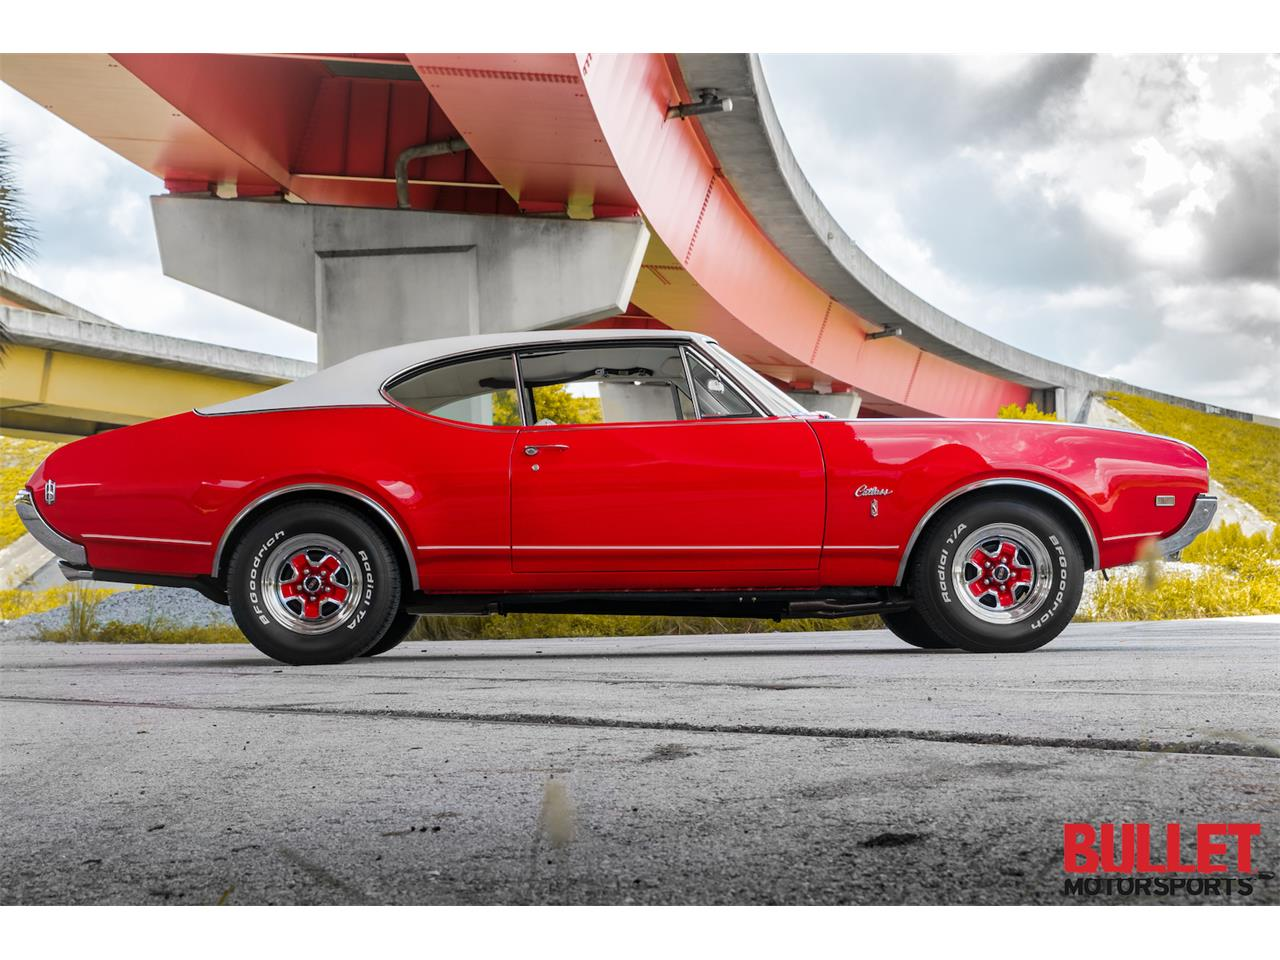 Large Picture of Classic '68 Oldsmobile Cutlass Supreme located in Florida Offered by Bullet Motorsports Inc - PZS9